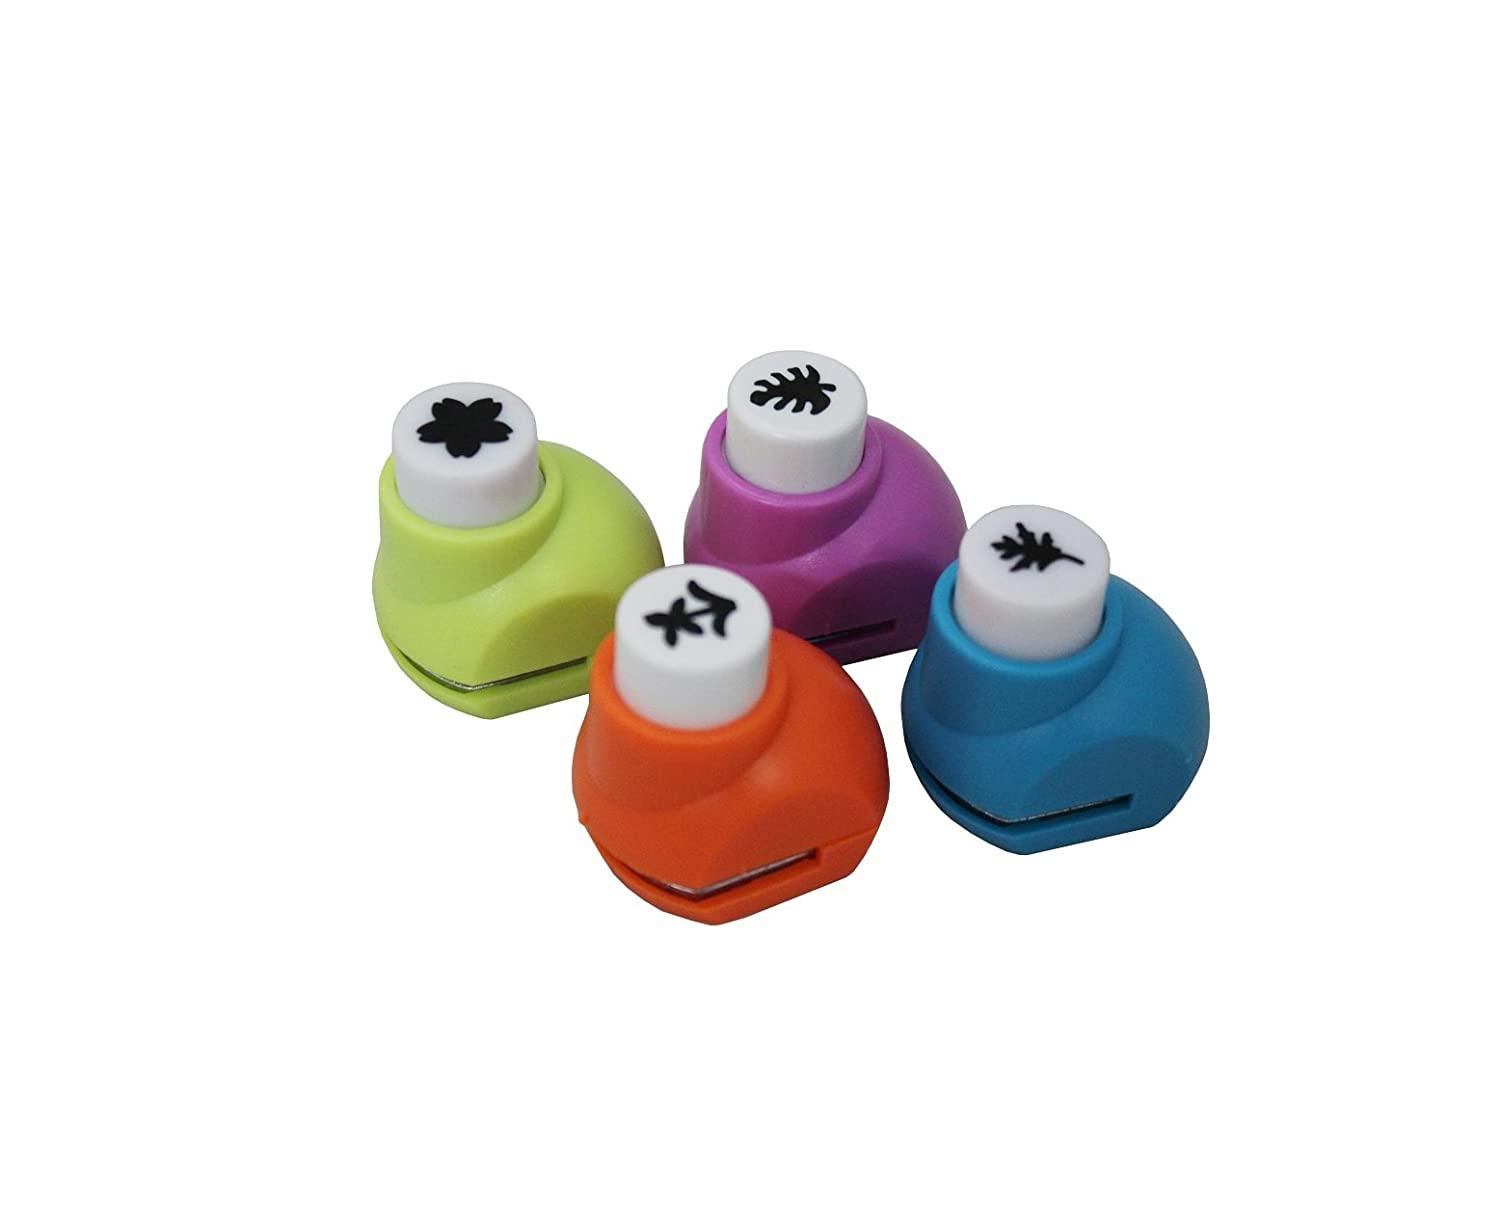 Buy shopaholic innovative craft paper punch for diy paper shape buy shopaholic innovative craft paper punch for diy paper shape for card making 4pc online at low prices in india amazon jeuxipadfo Choice Image